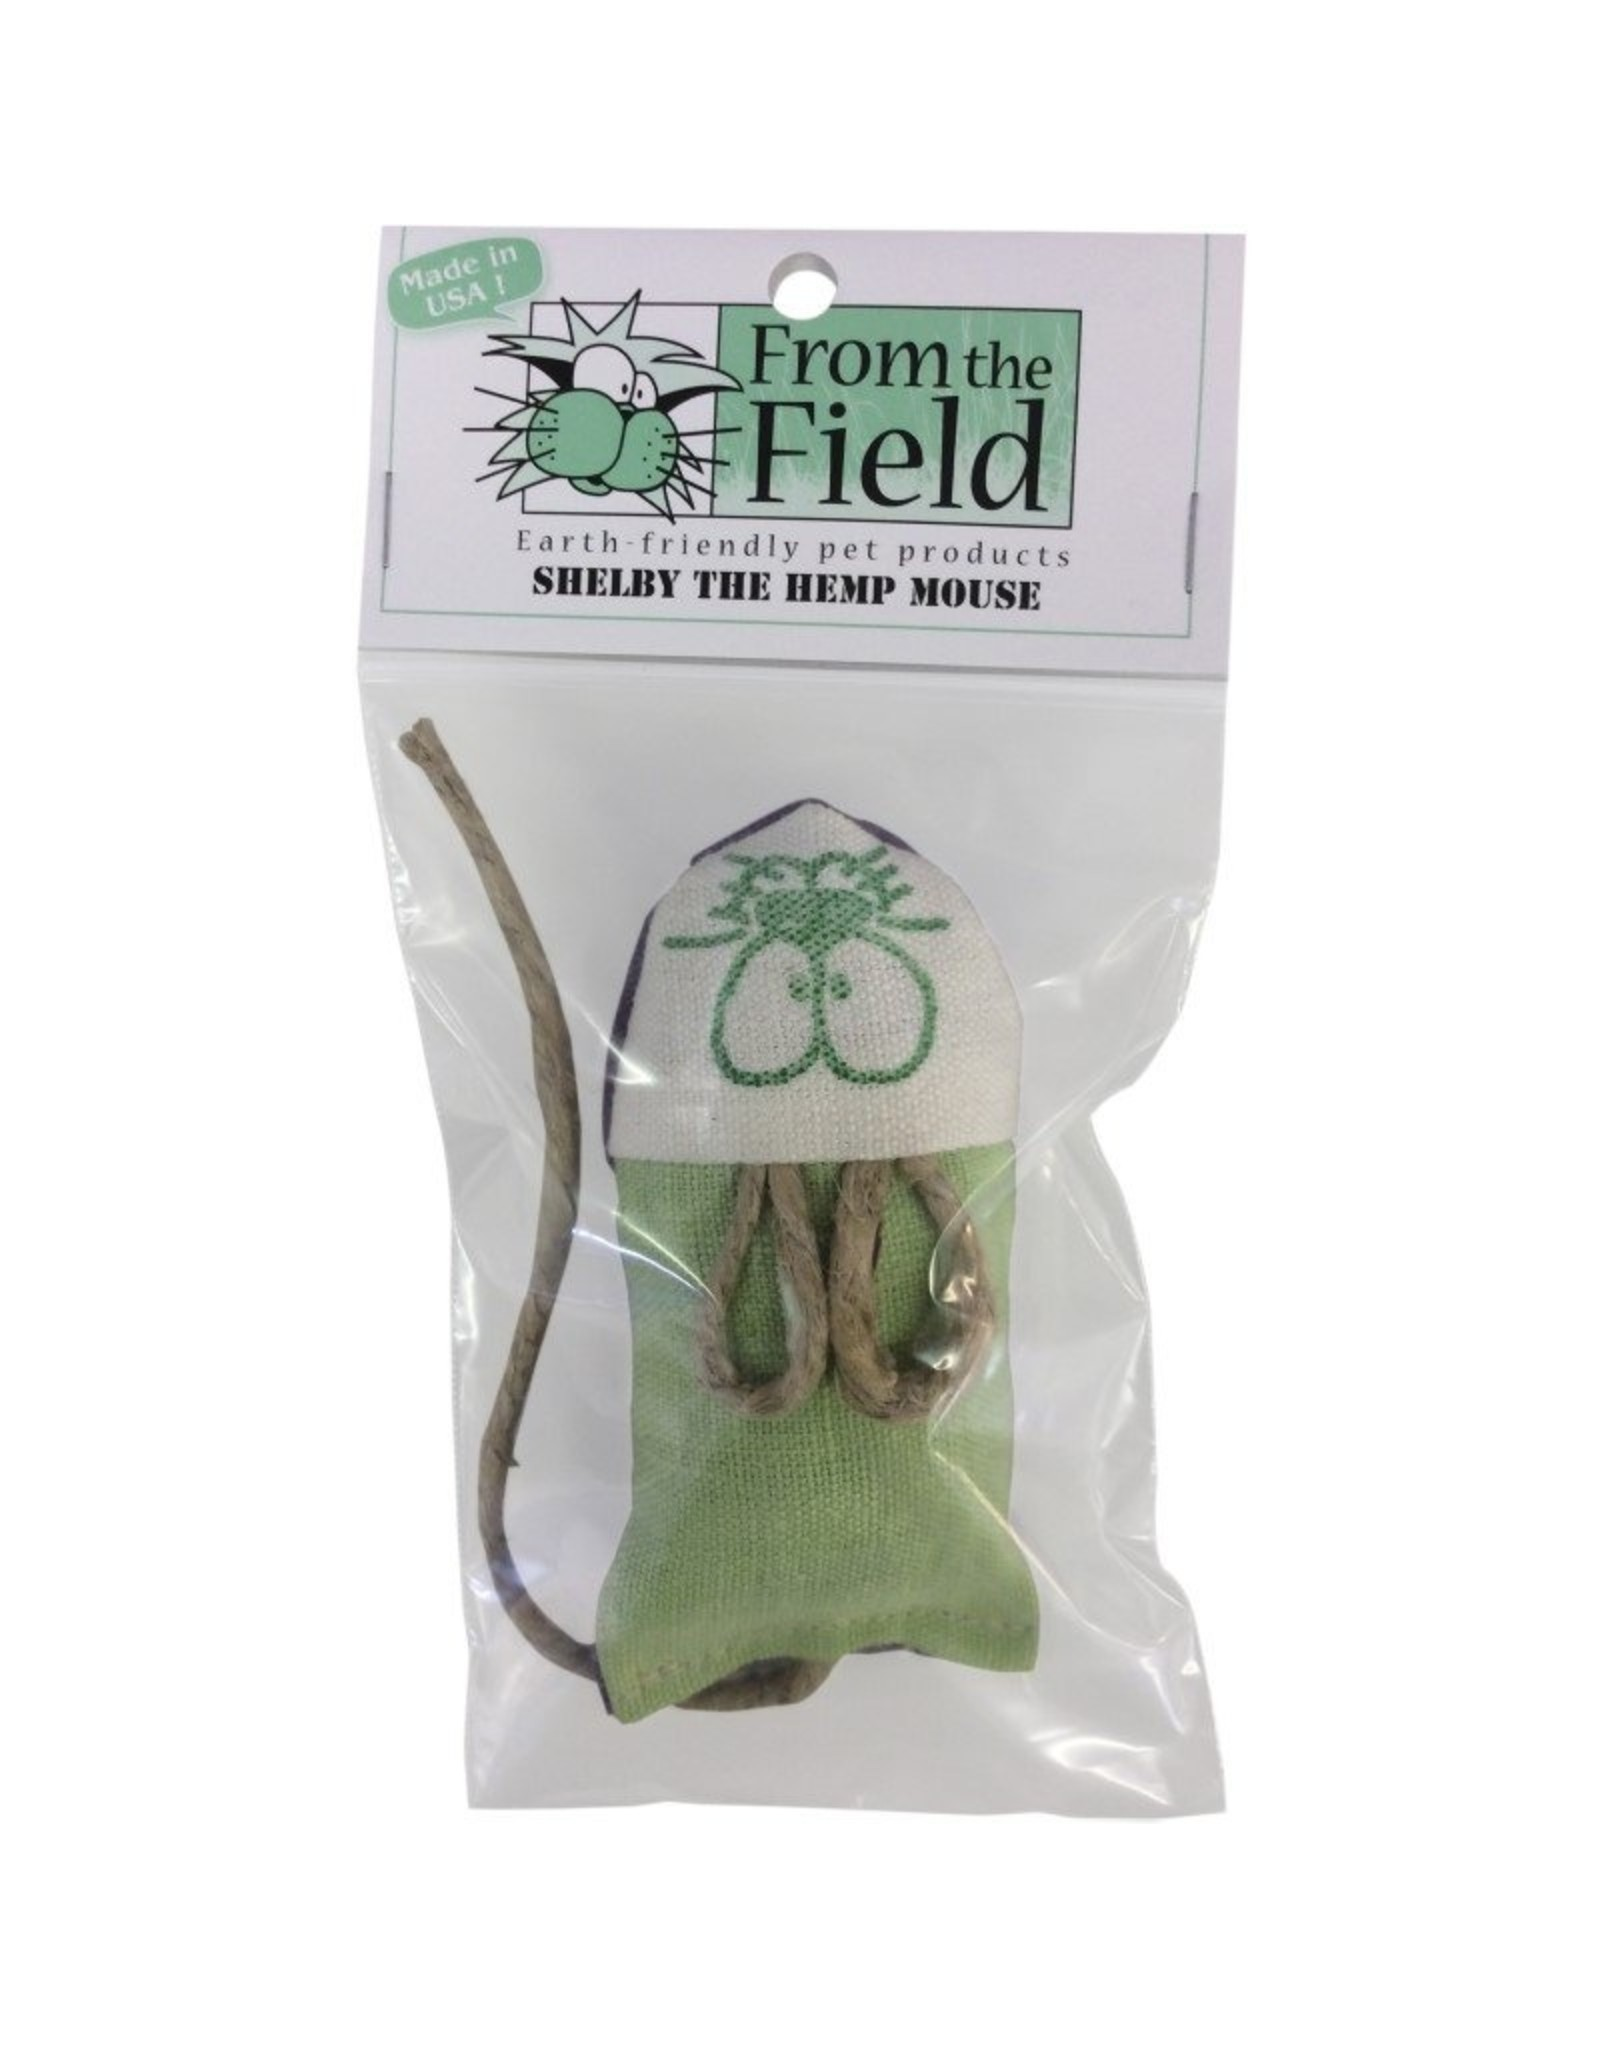 From the Field From the Field Shelby the Hemp Mouse Cat Toy with Catnip